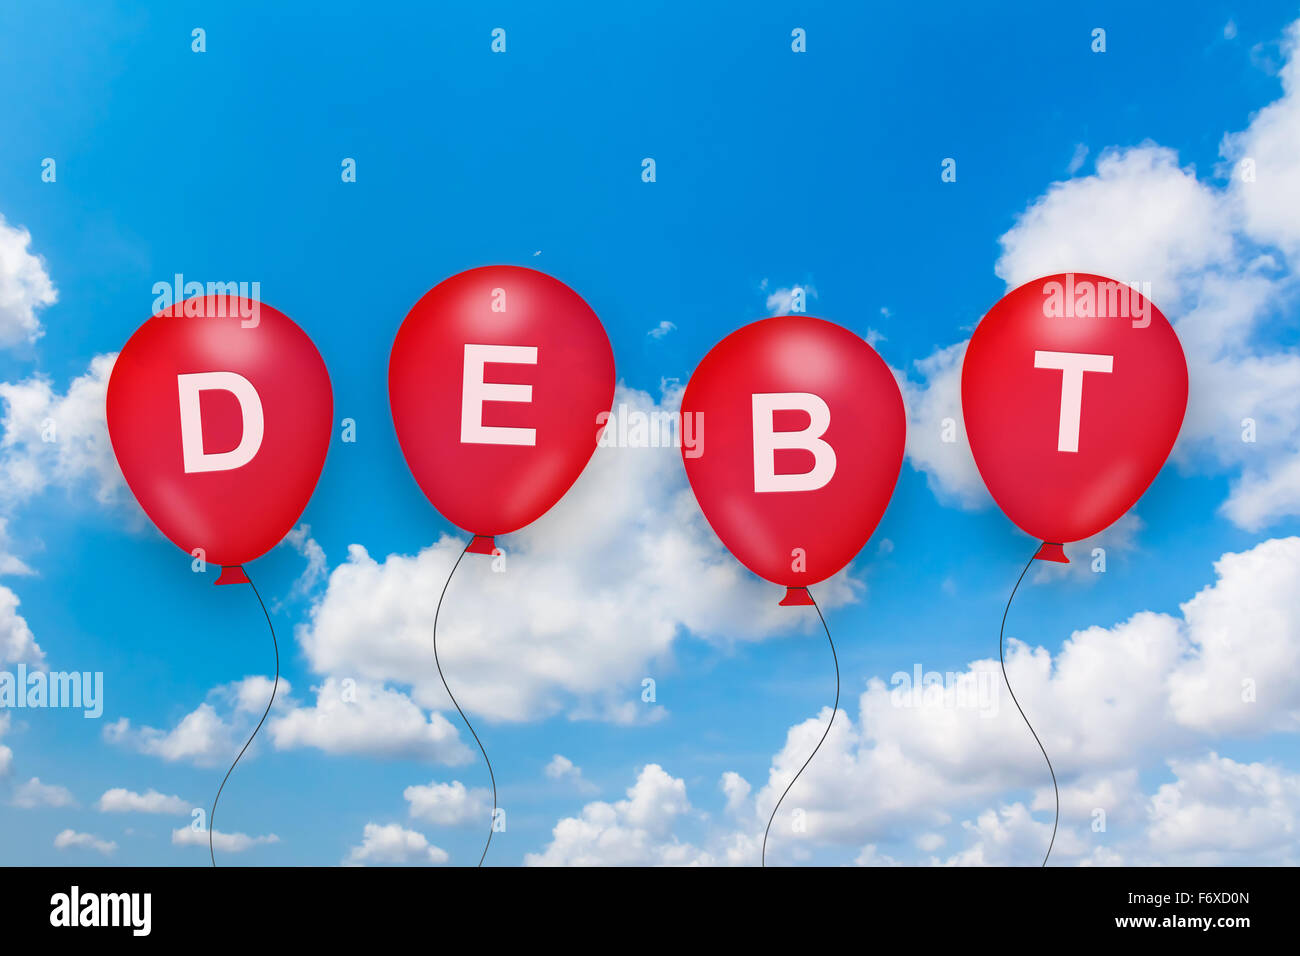 debt or loan text on balloon with blue sky background - Stock Image